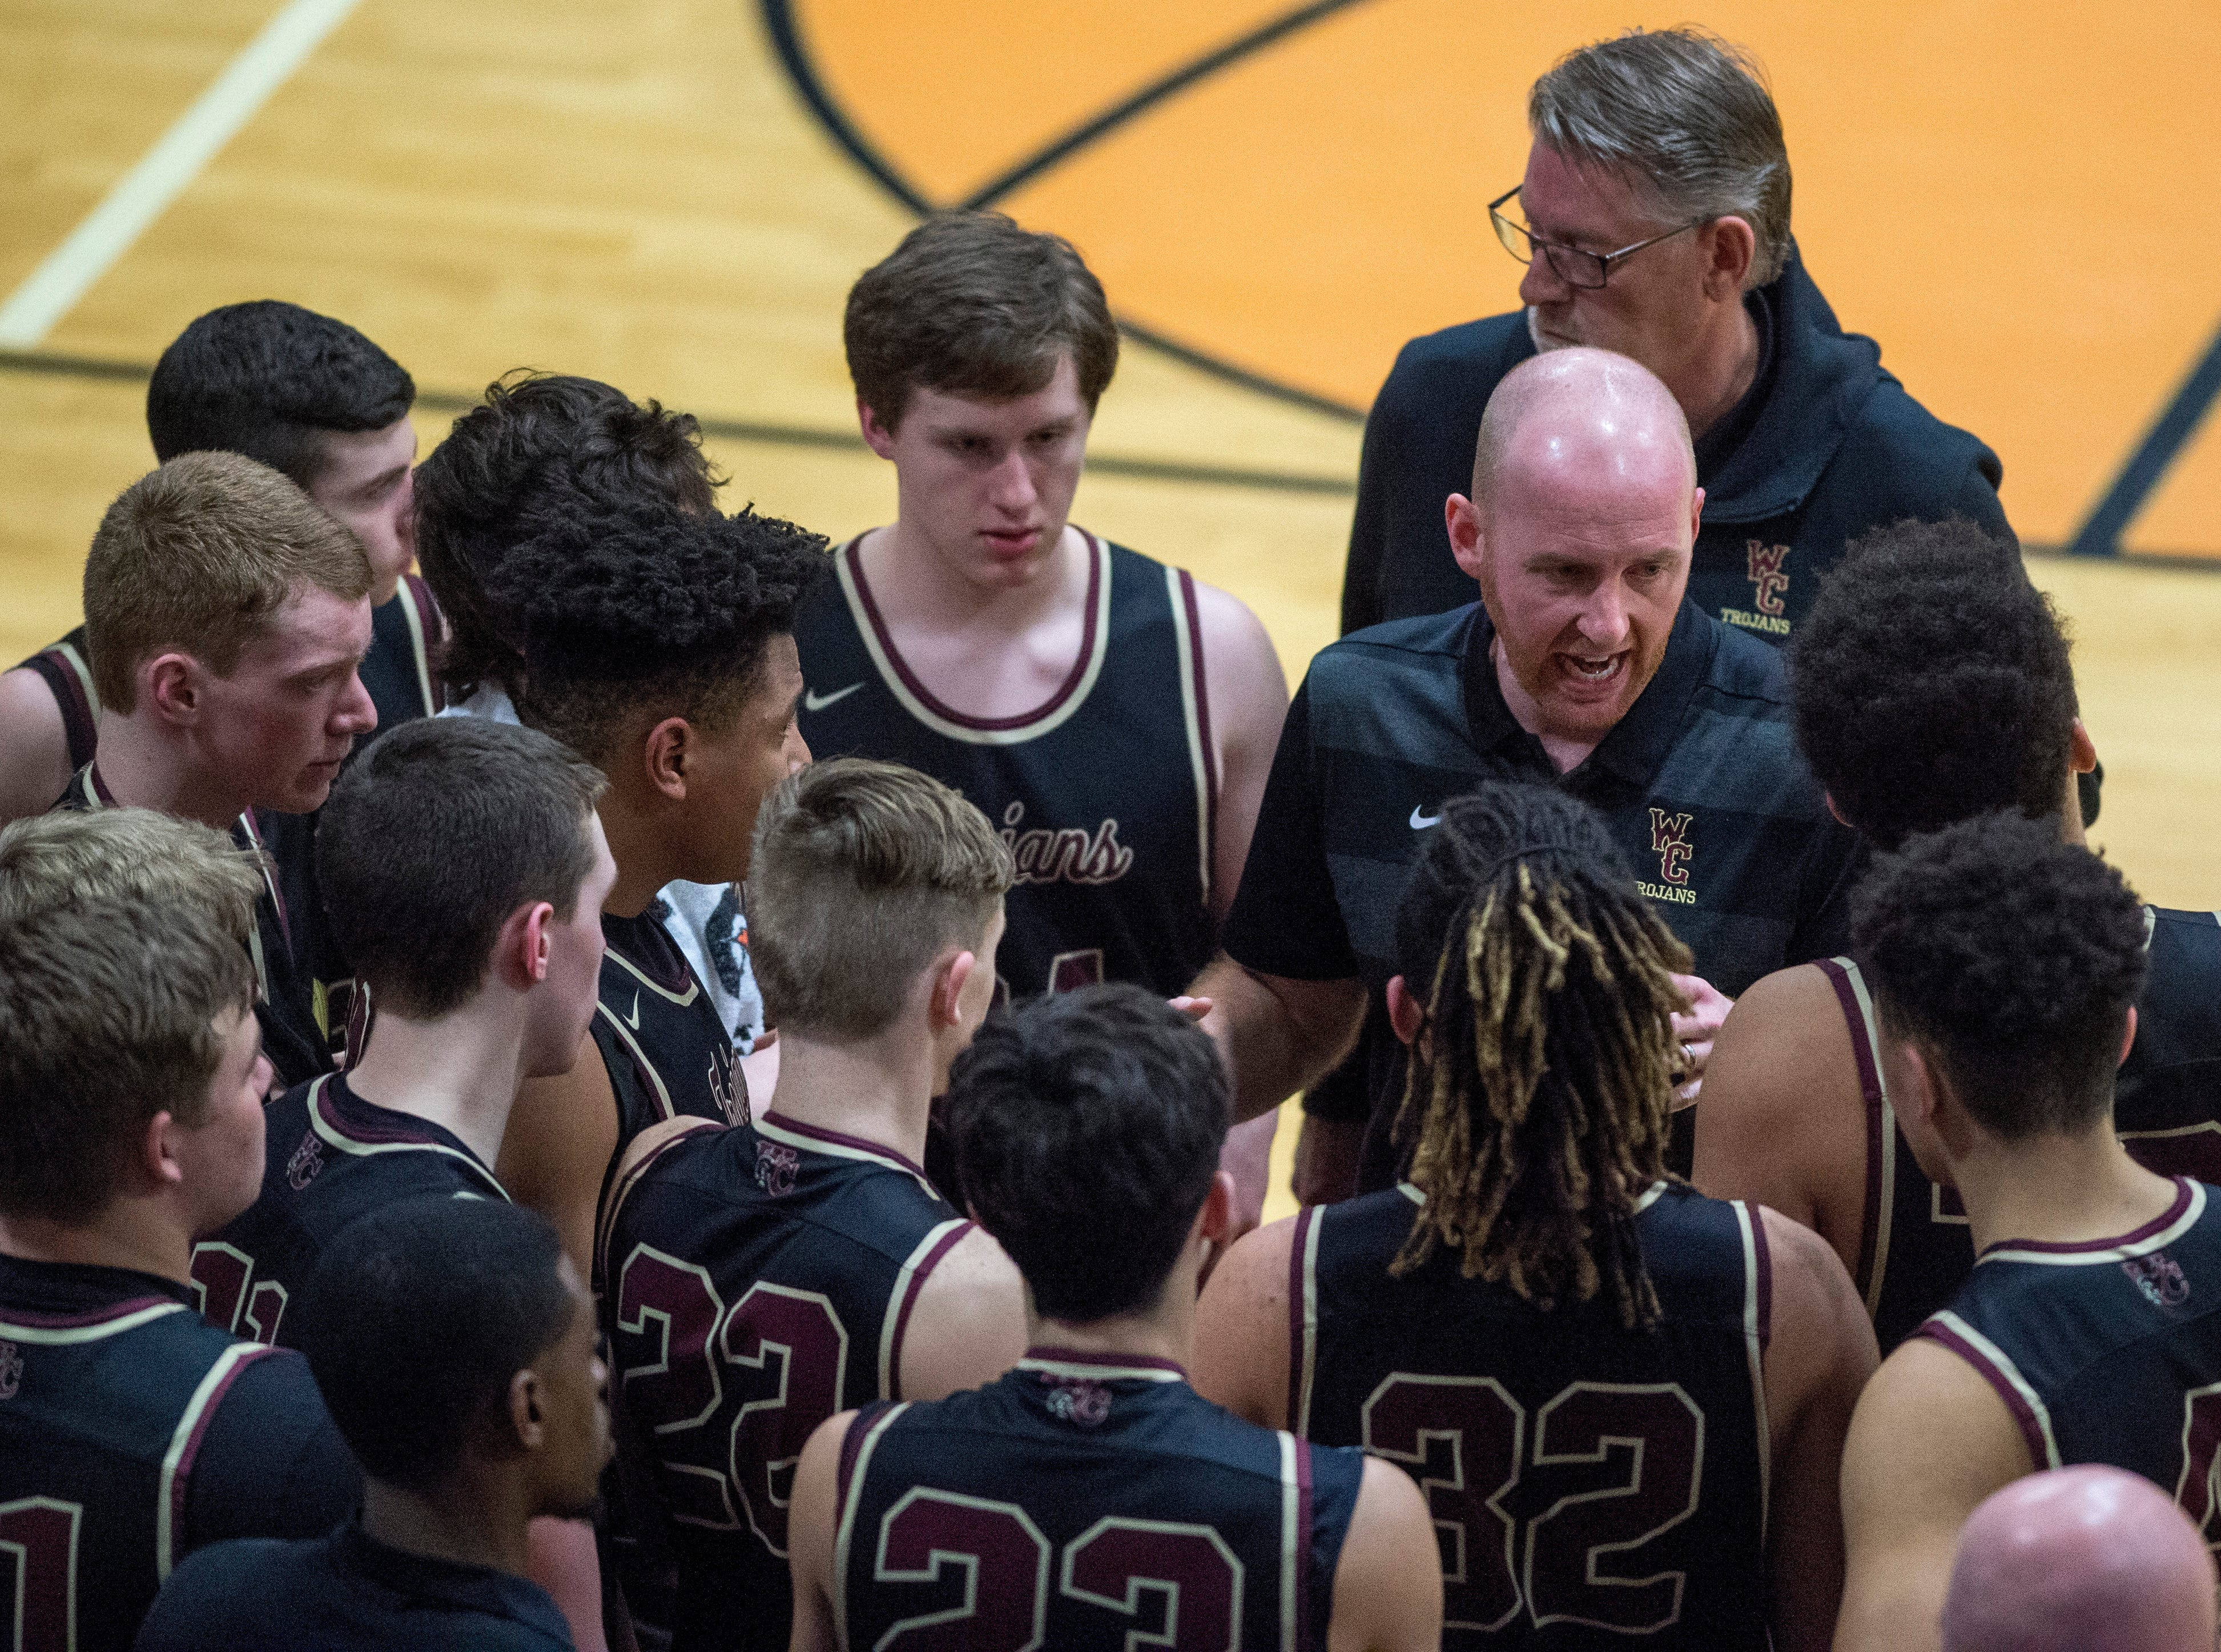 Webster County's Head Coach Jon Newton gathers his team before the start of the third period during the Union County vs Webster County game at the Dr. Doug Hines Gymnasium in Morganfield, Ky. Tuesday, Feb. 19, 2019.